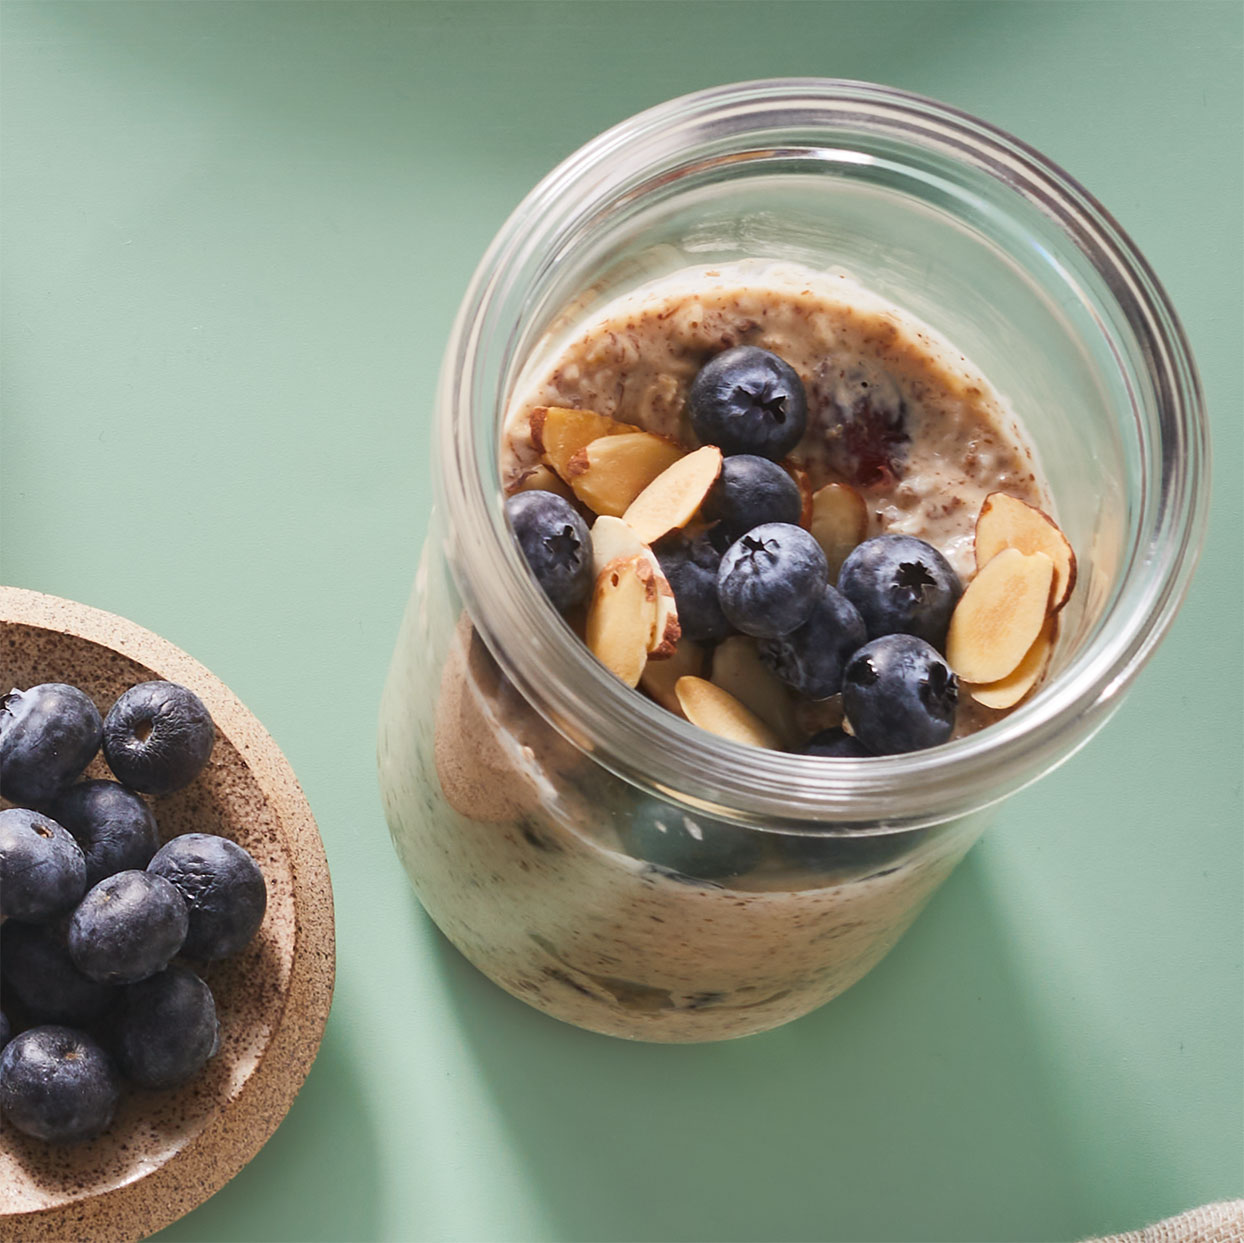 Overnight oats can simplify your morning routine while still providing a hearty, nutritious breakfast. You can prepare this in a 2-cup mason jar or other to-go container if you usually transport your breakfast. Source: Diabetic Living Magazine, Summer 2020